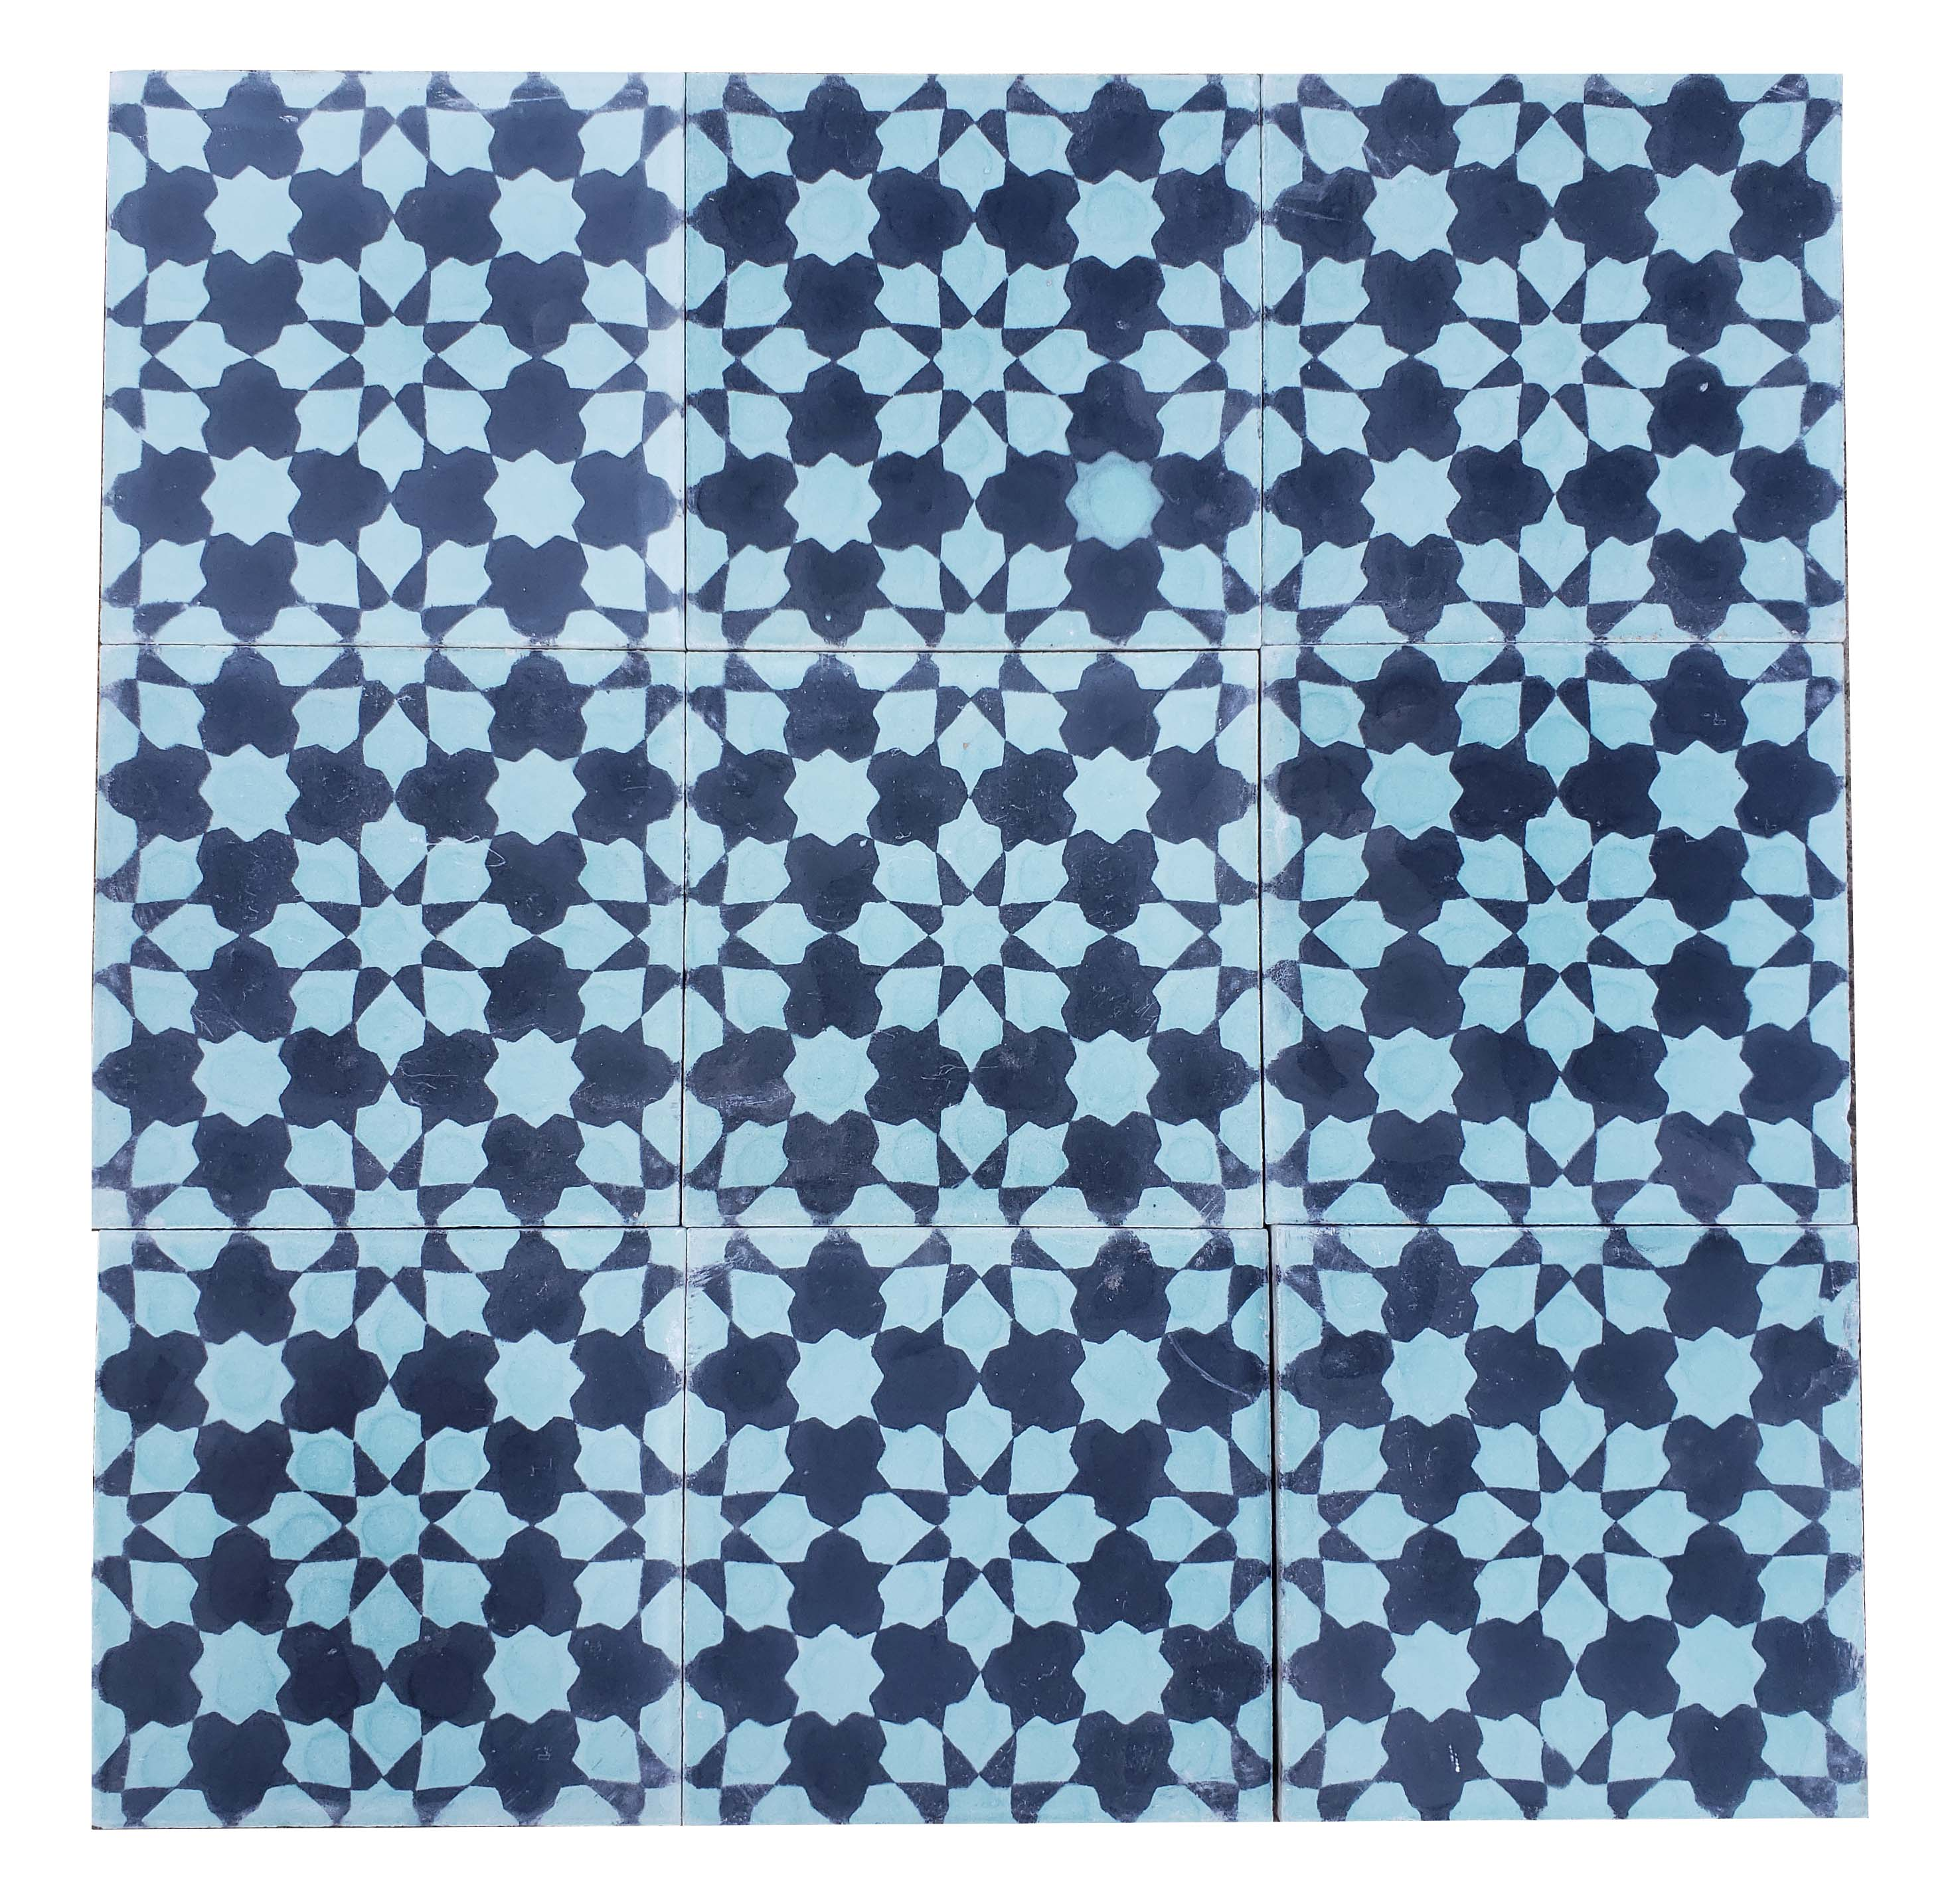 moroccan-cement-tile-seattle-ct107.jpg